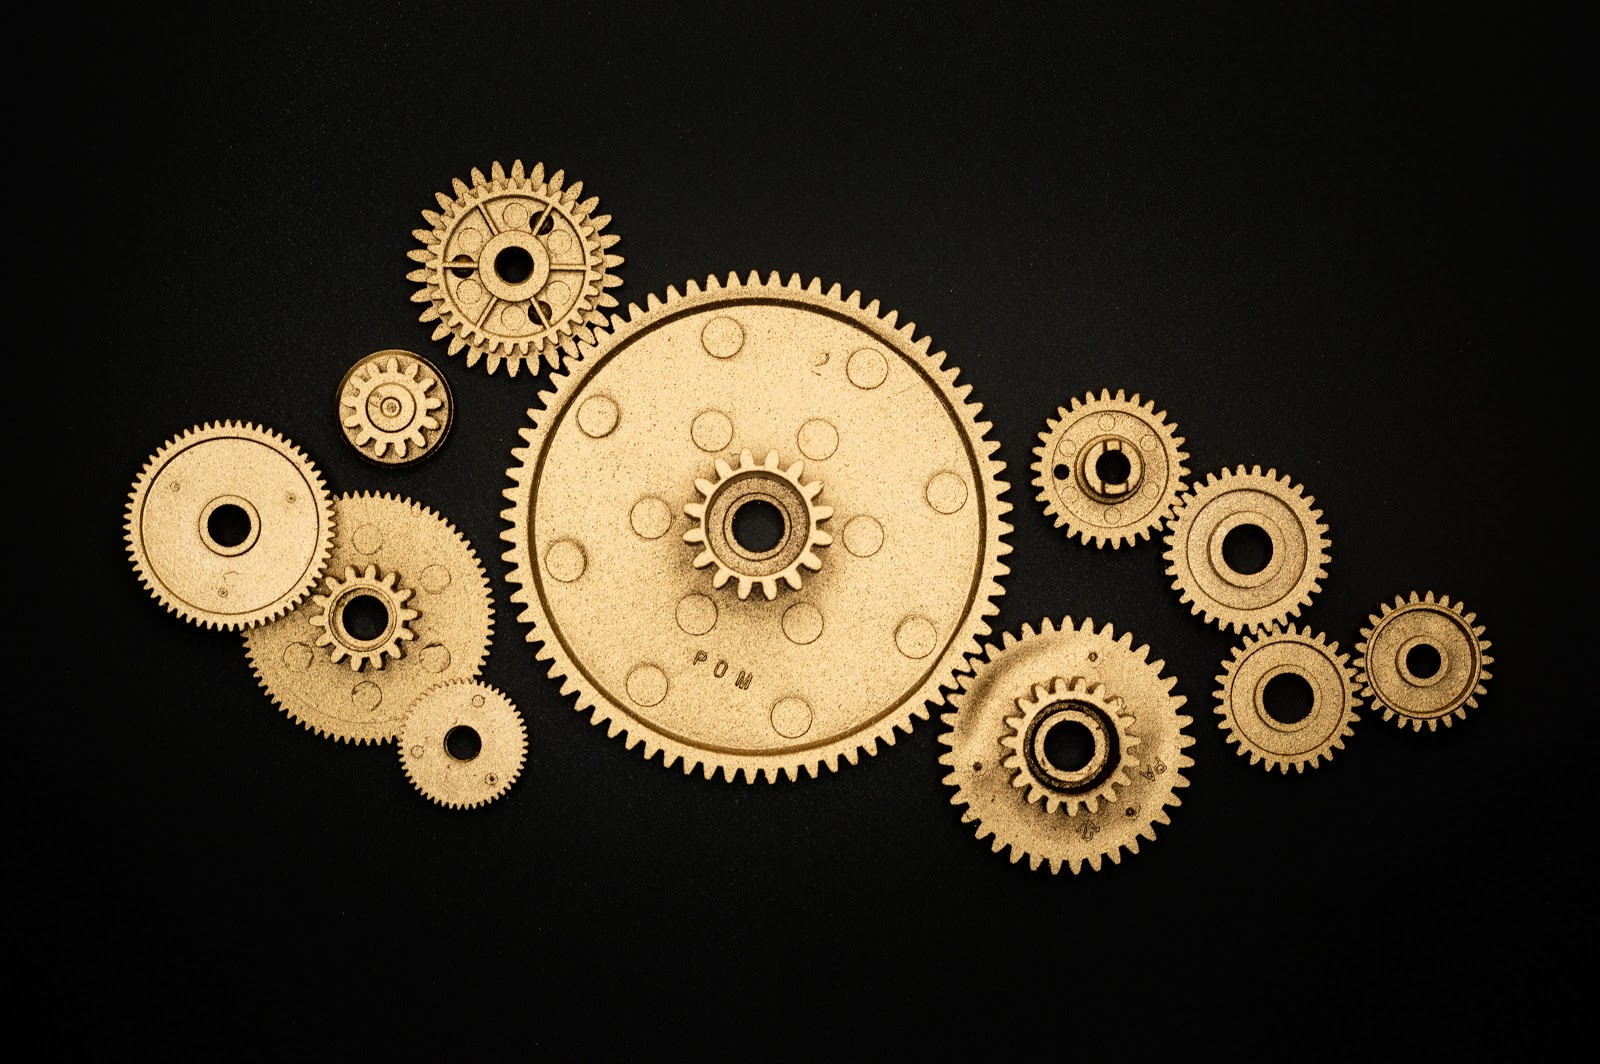 A collection of gears.